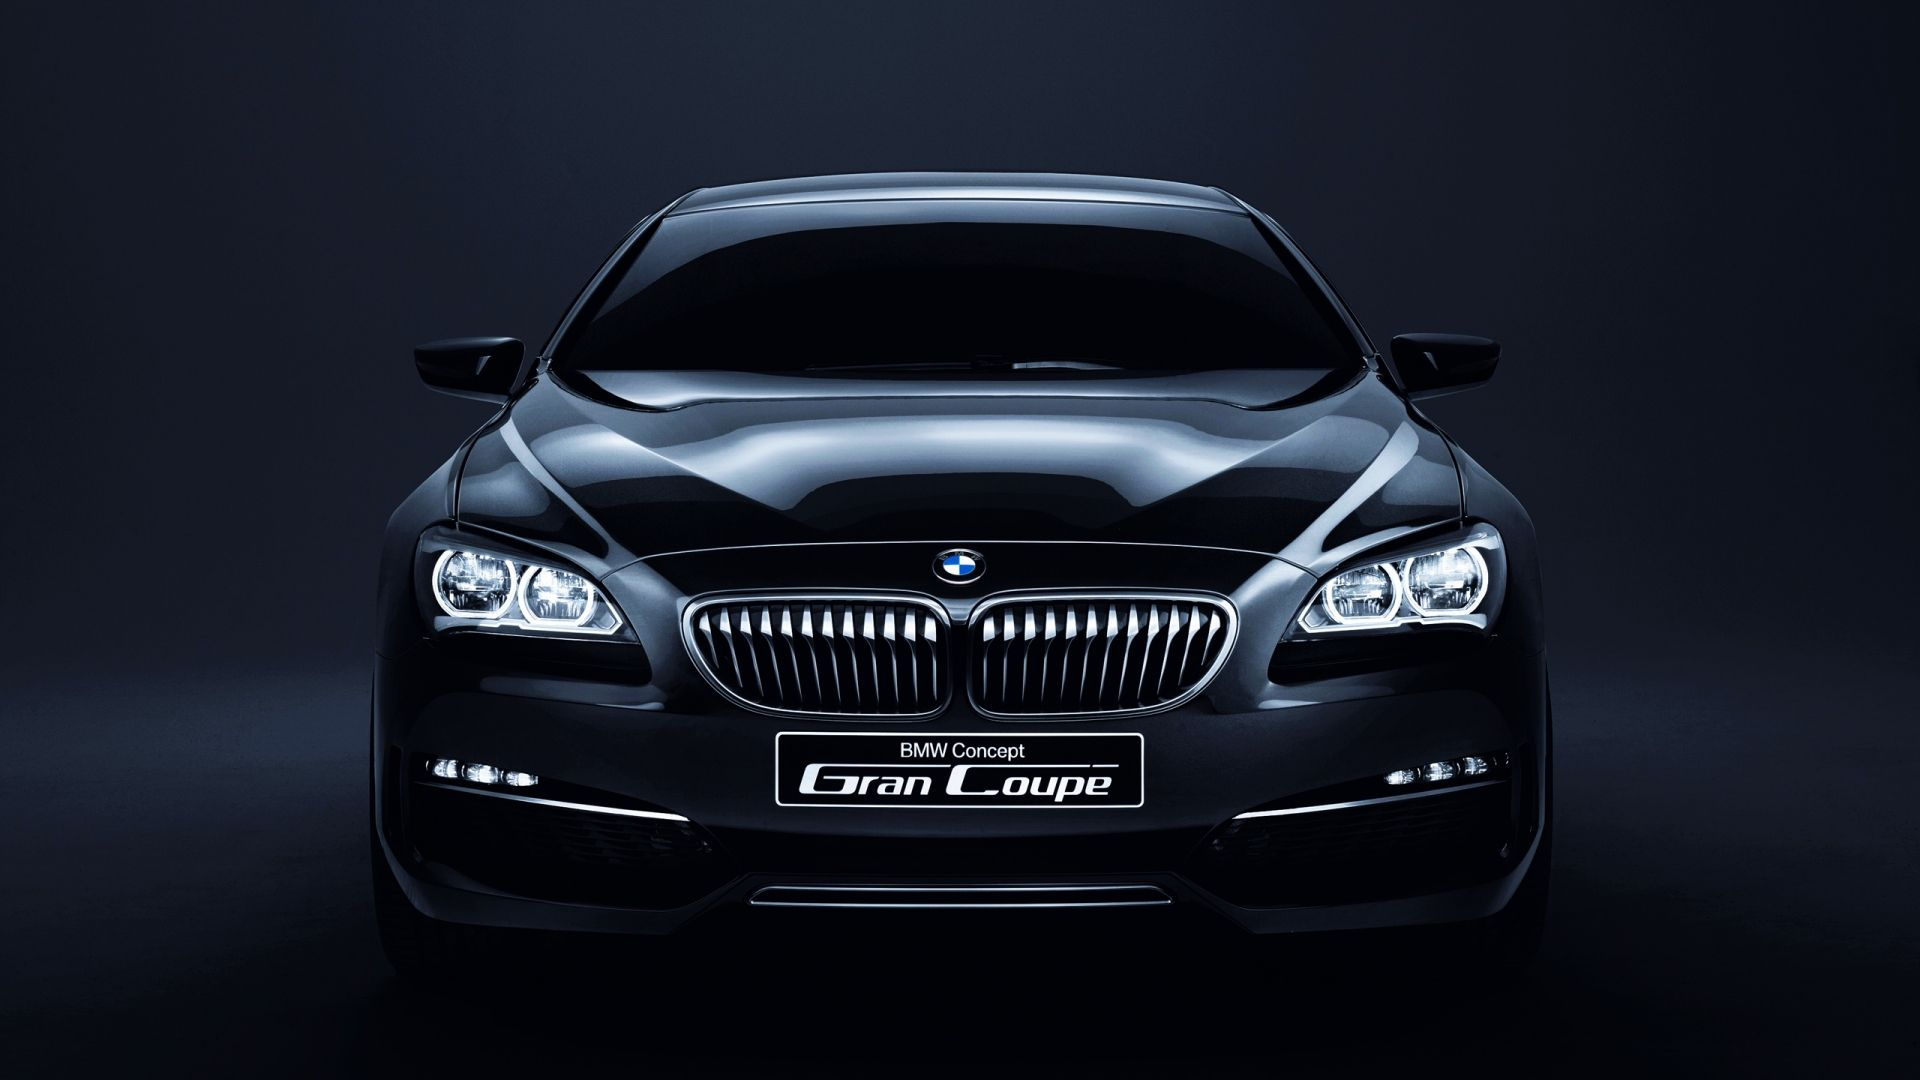 Black Bmw Wallpapers Iphone Background Hupages Download Iphone Wallpapers Bmw Concept Bmw Concept Car Bmw